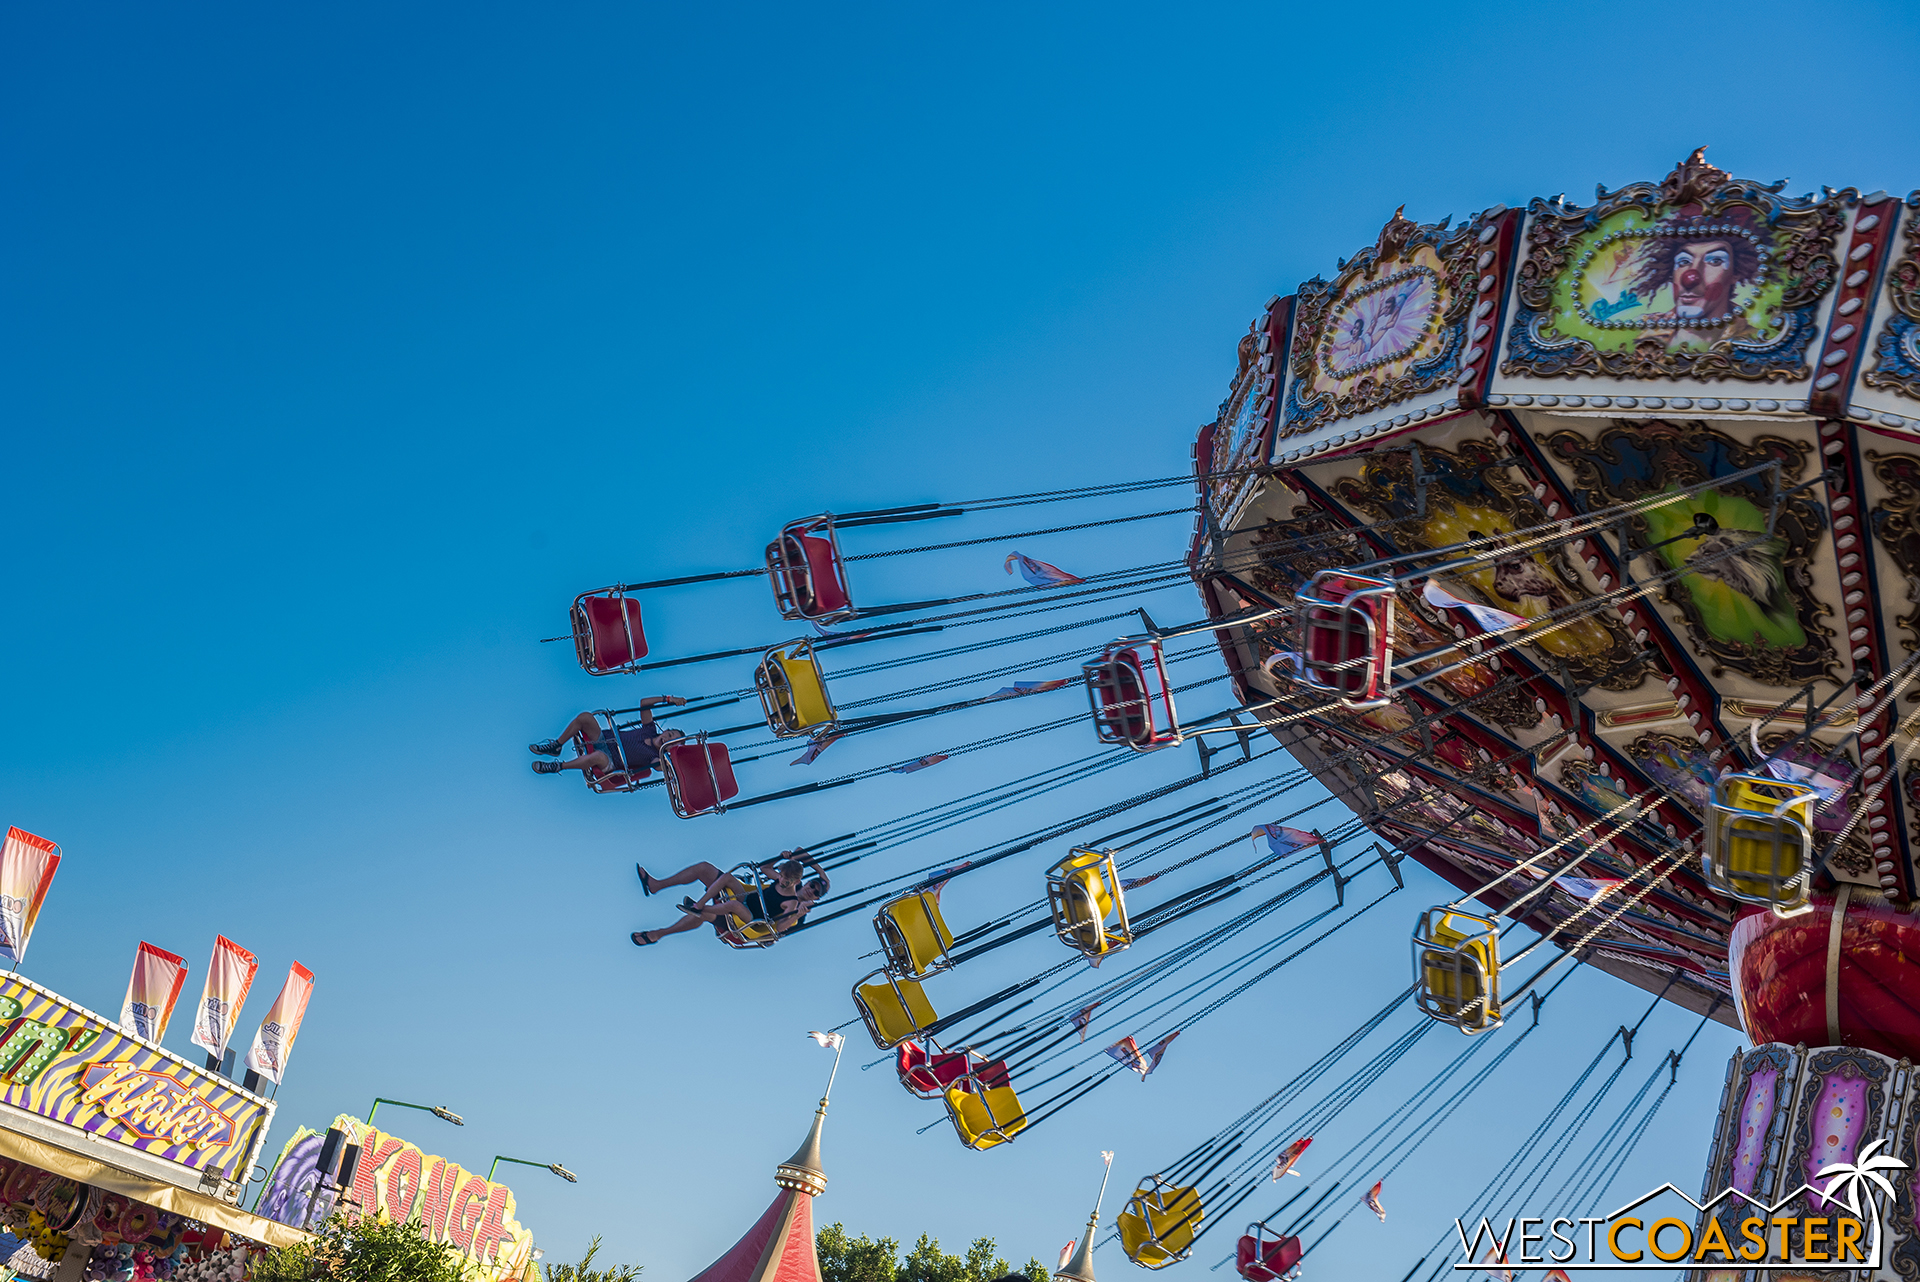 There are classic rides like these swings.